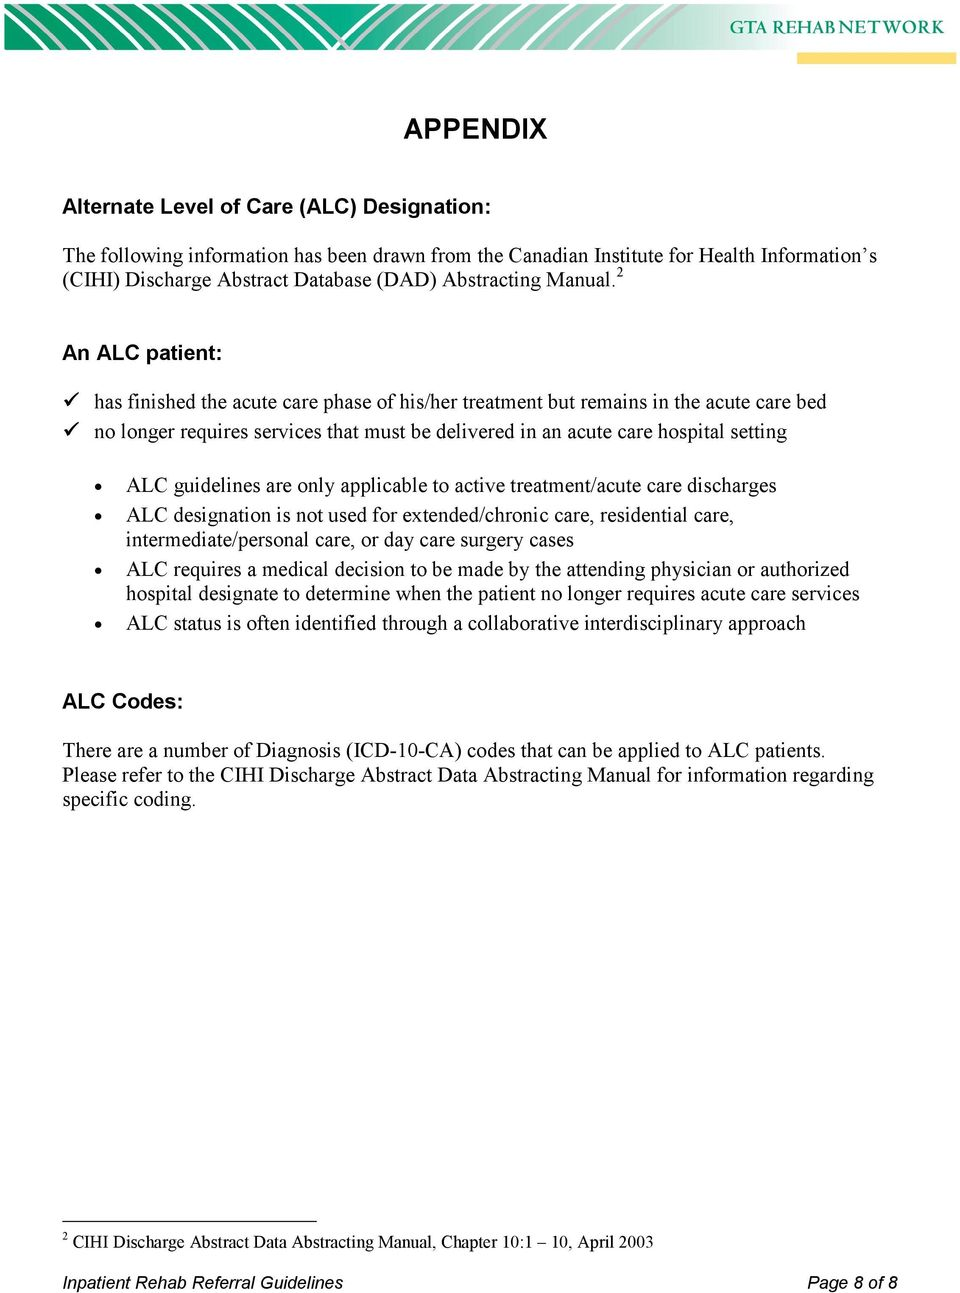 2 An ALC patient: has finished the acute care phase of his/her treatment but remains in the acute care bed no longer requires services that must be delivered in an acute care hospital setting ALC